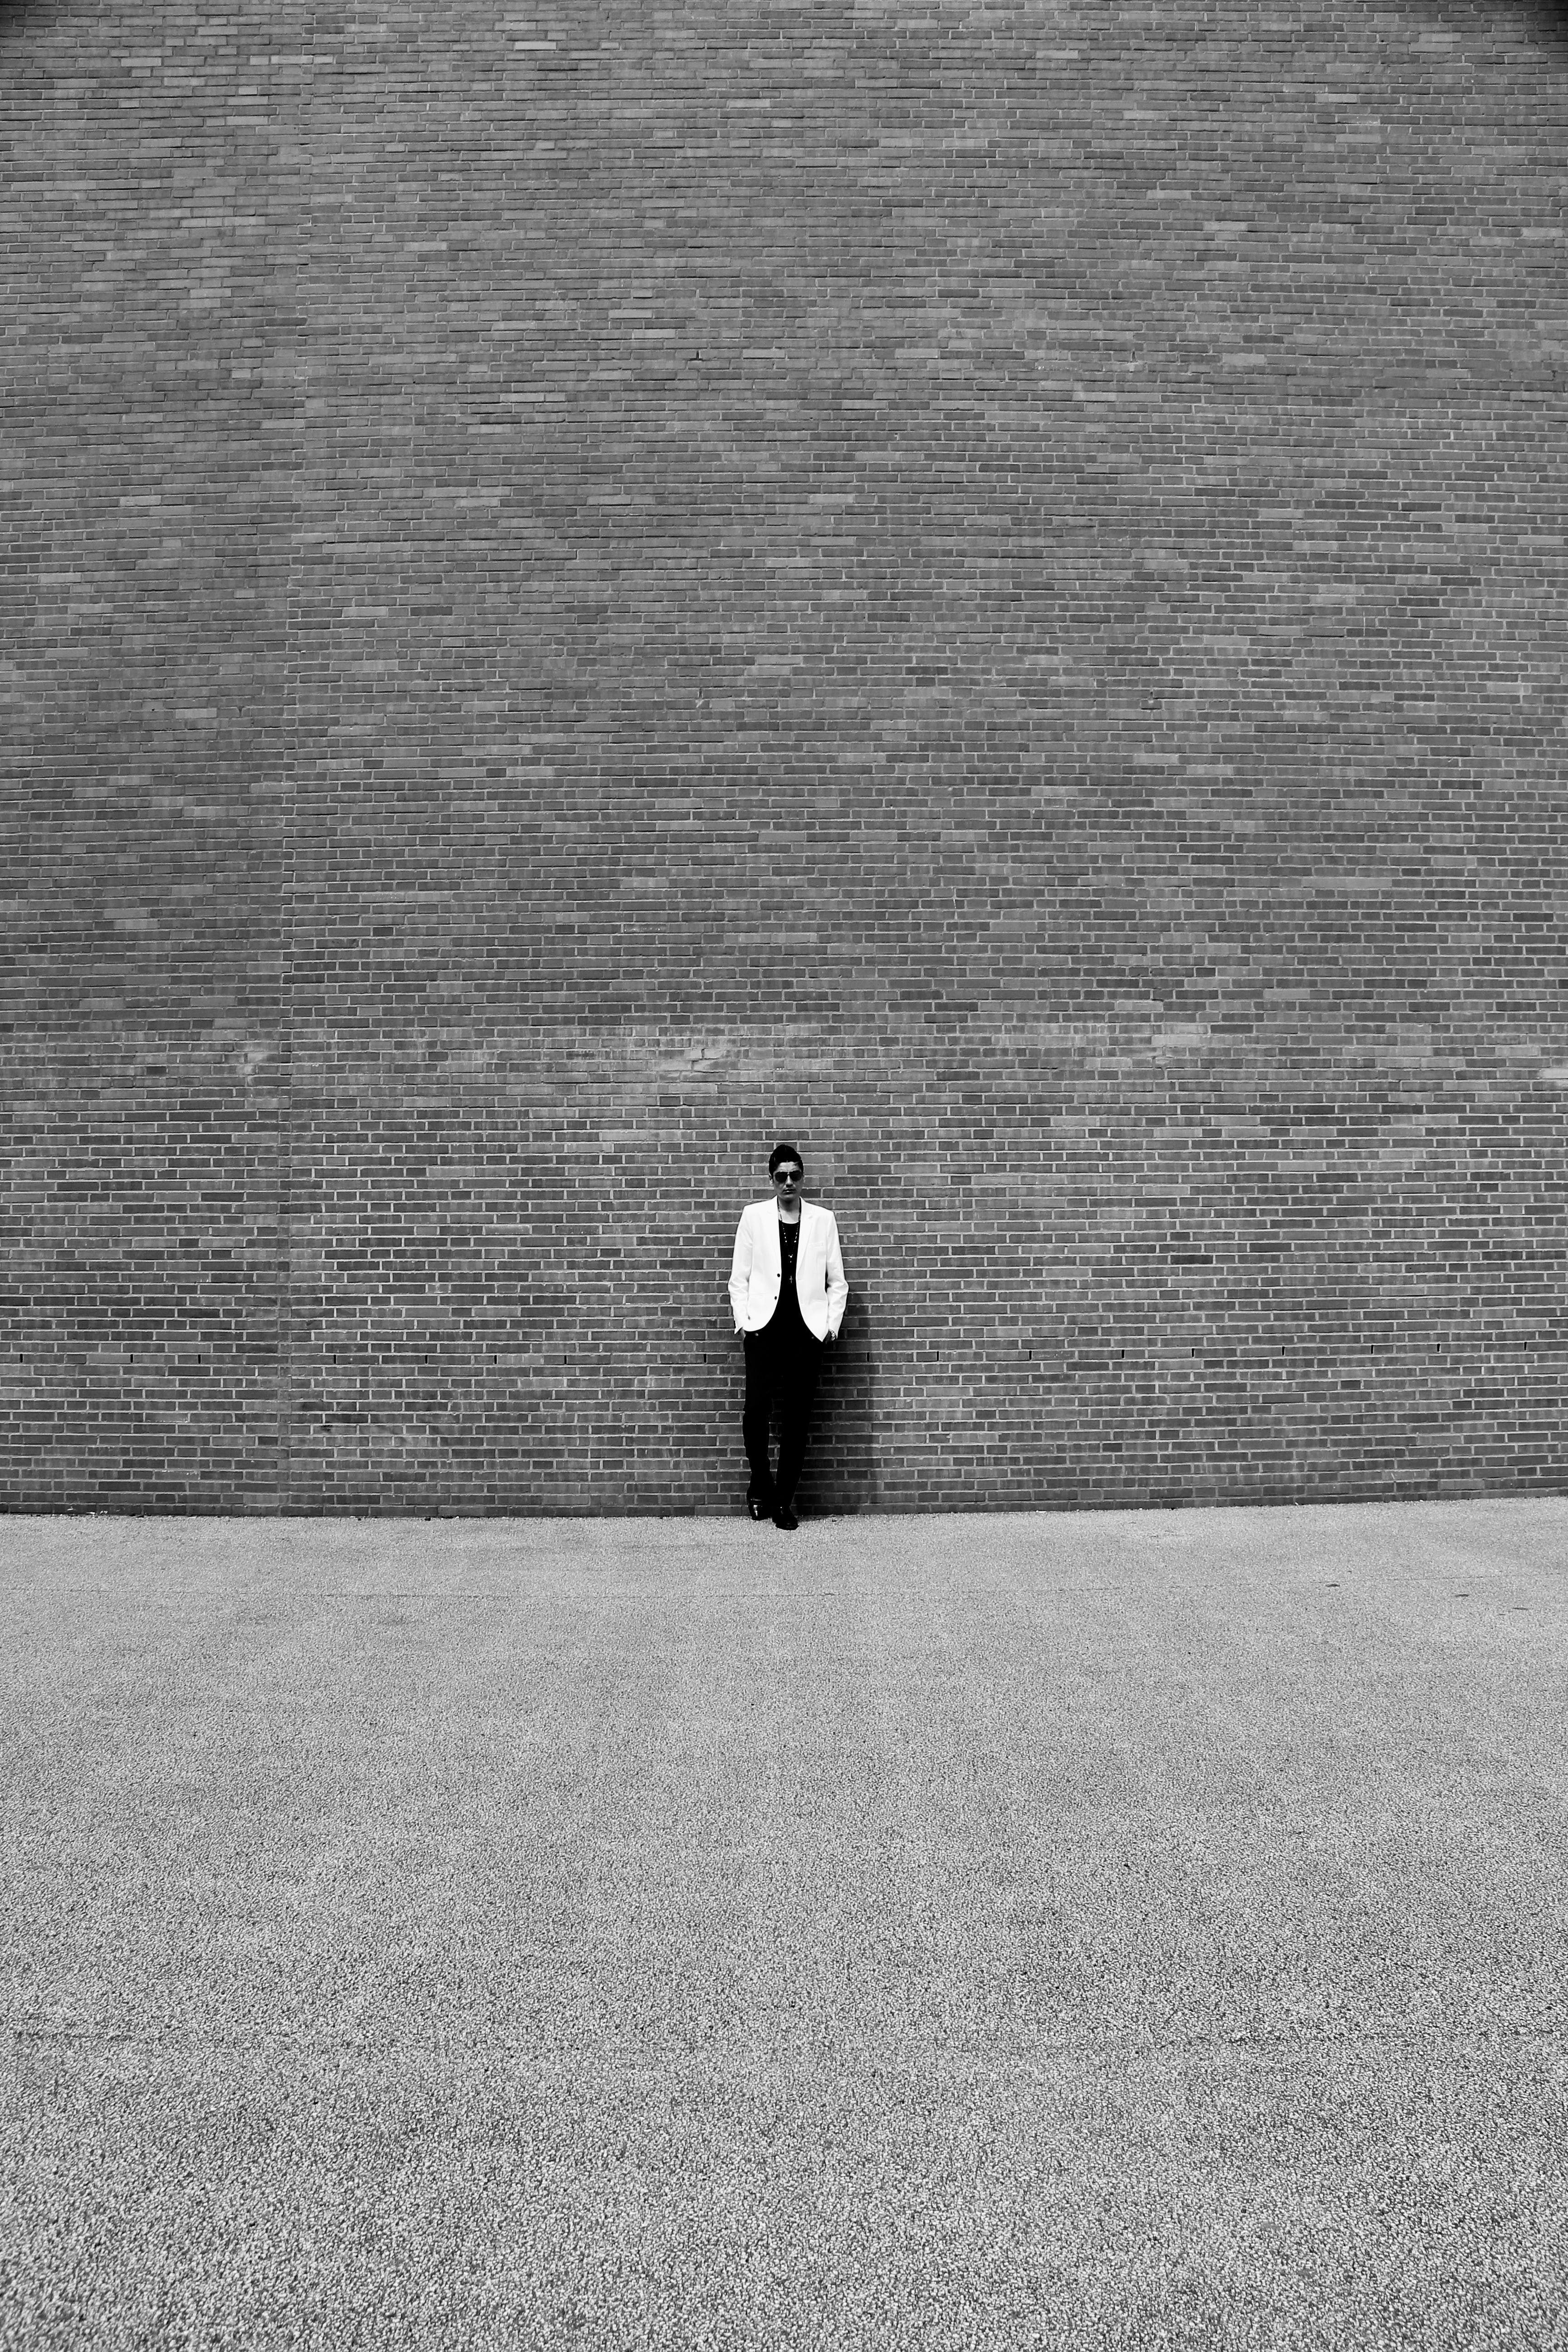 Grayscale Photography Of Man Wearing Suit